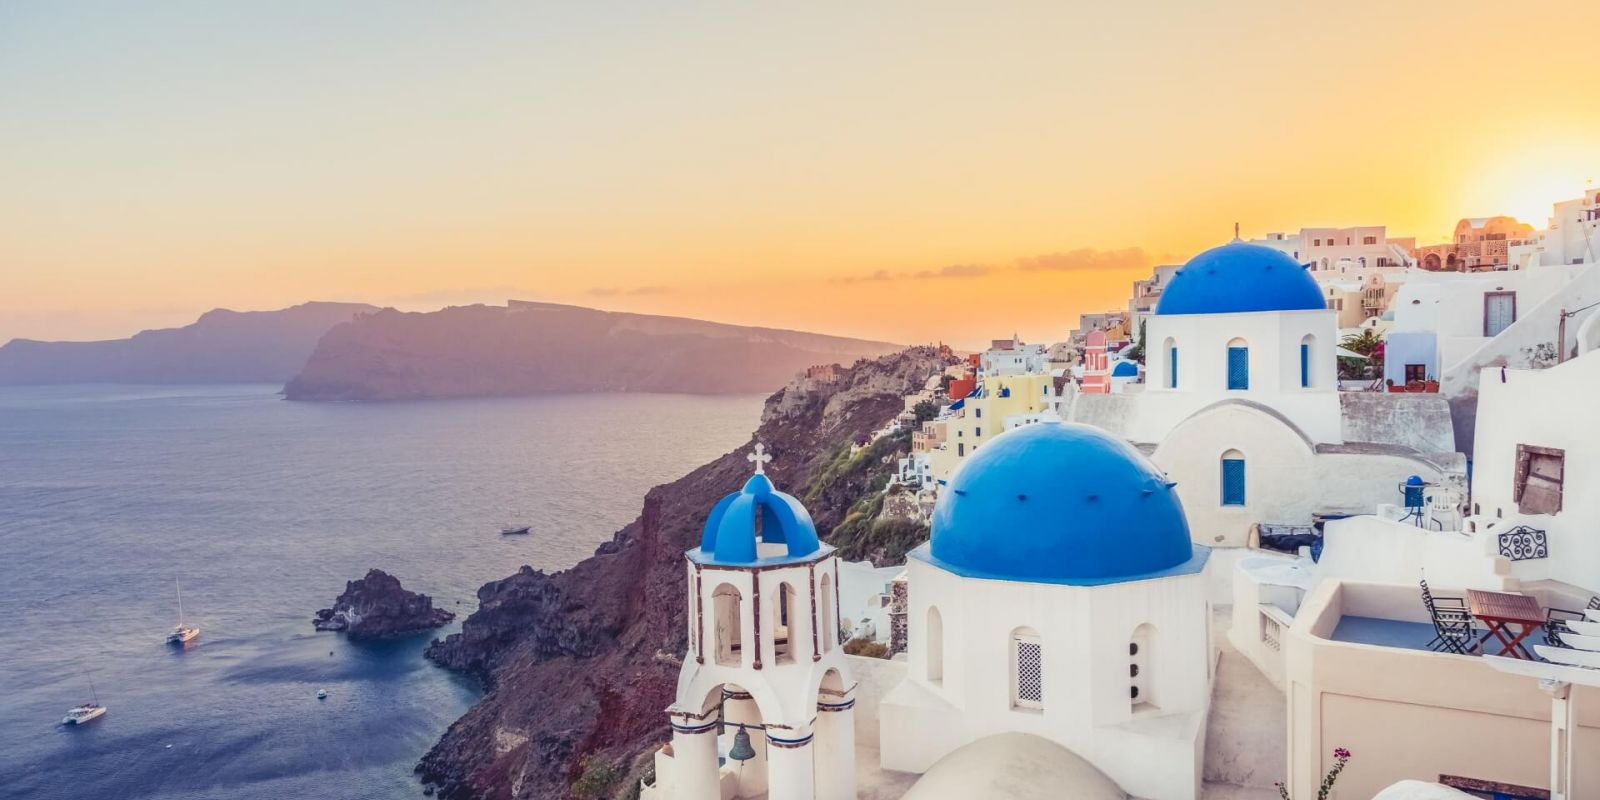 https://www.talamare.com/medias/The beautiful coastal town of Oia on Santorini island in Greece with white buildings and blue domes